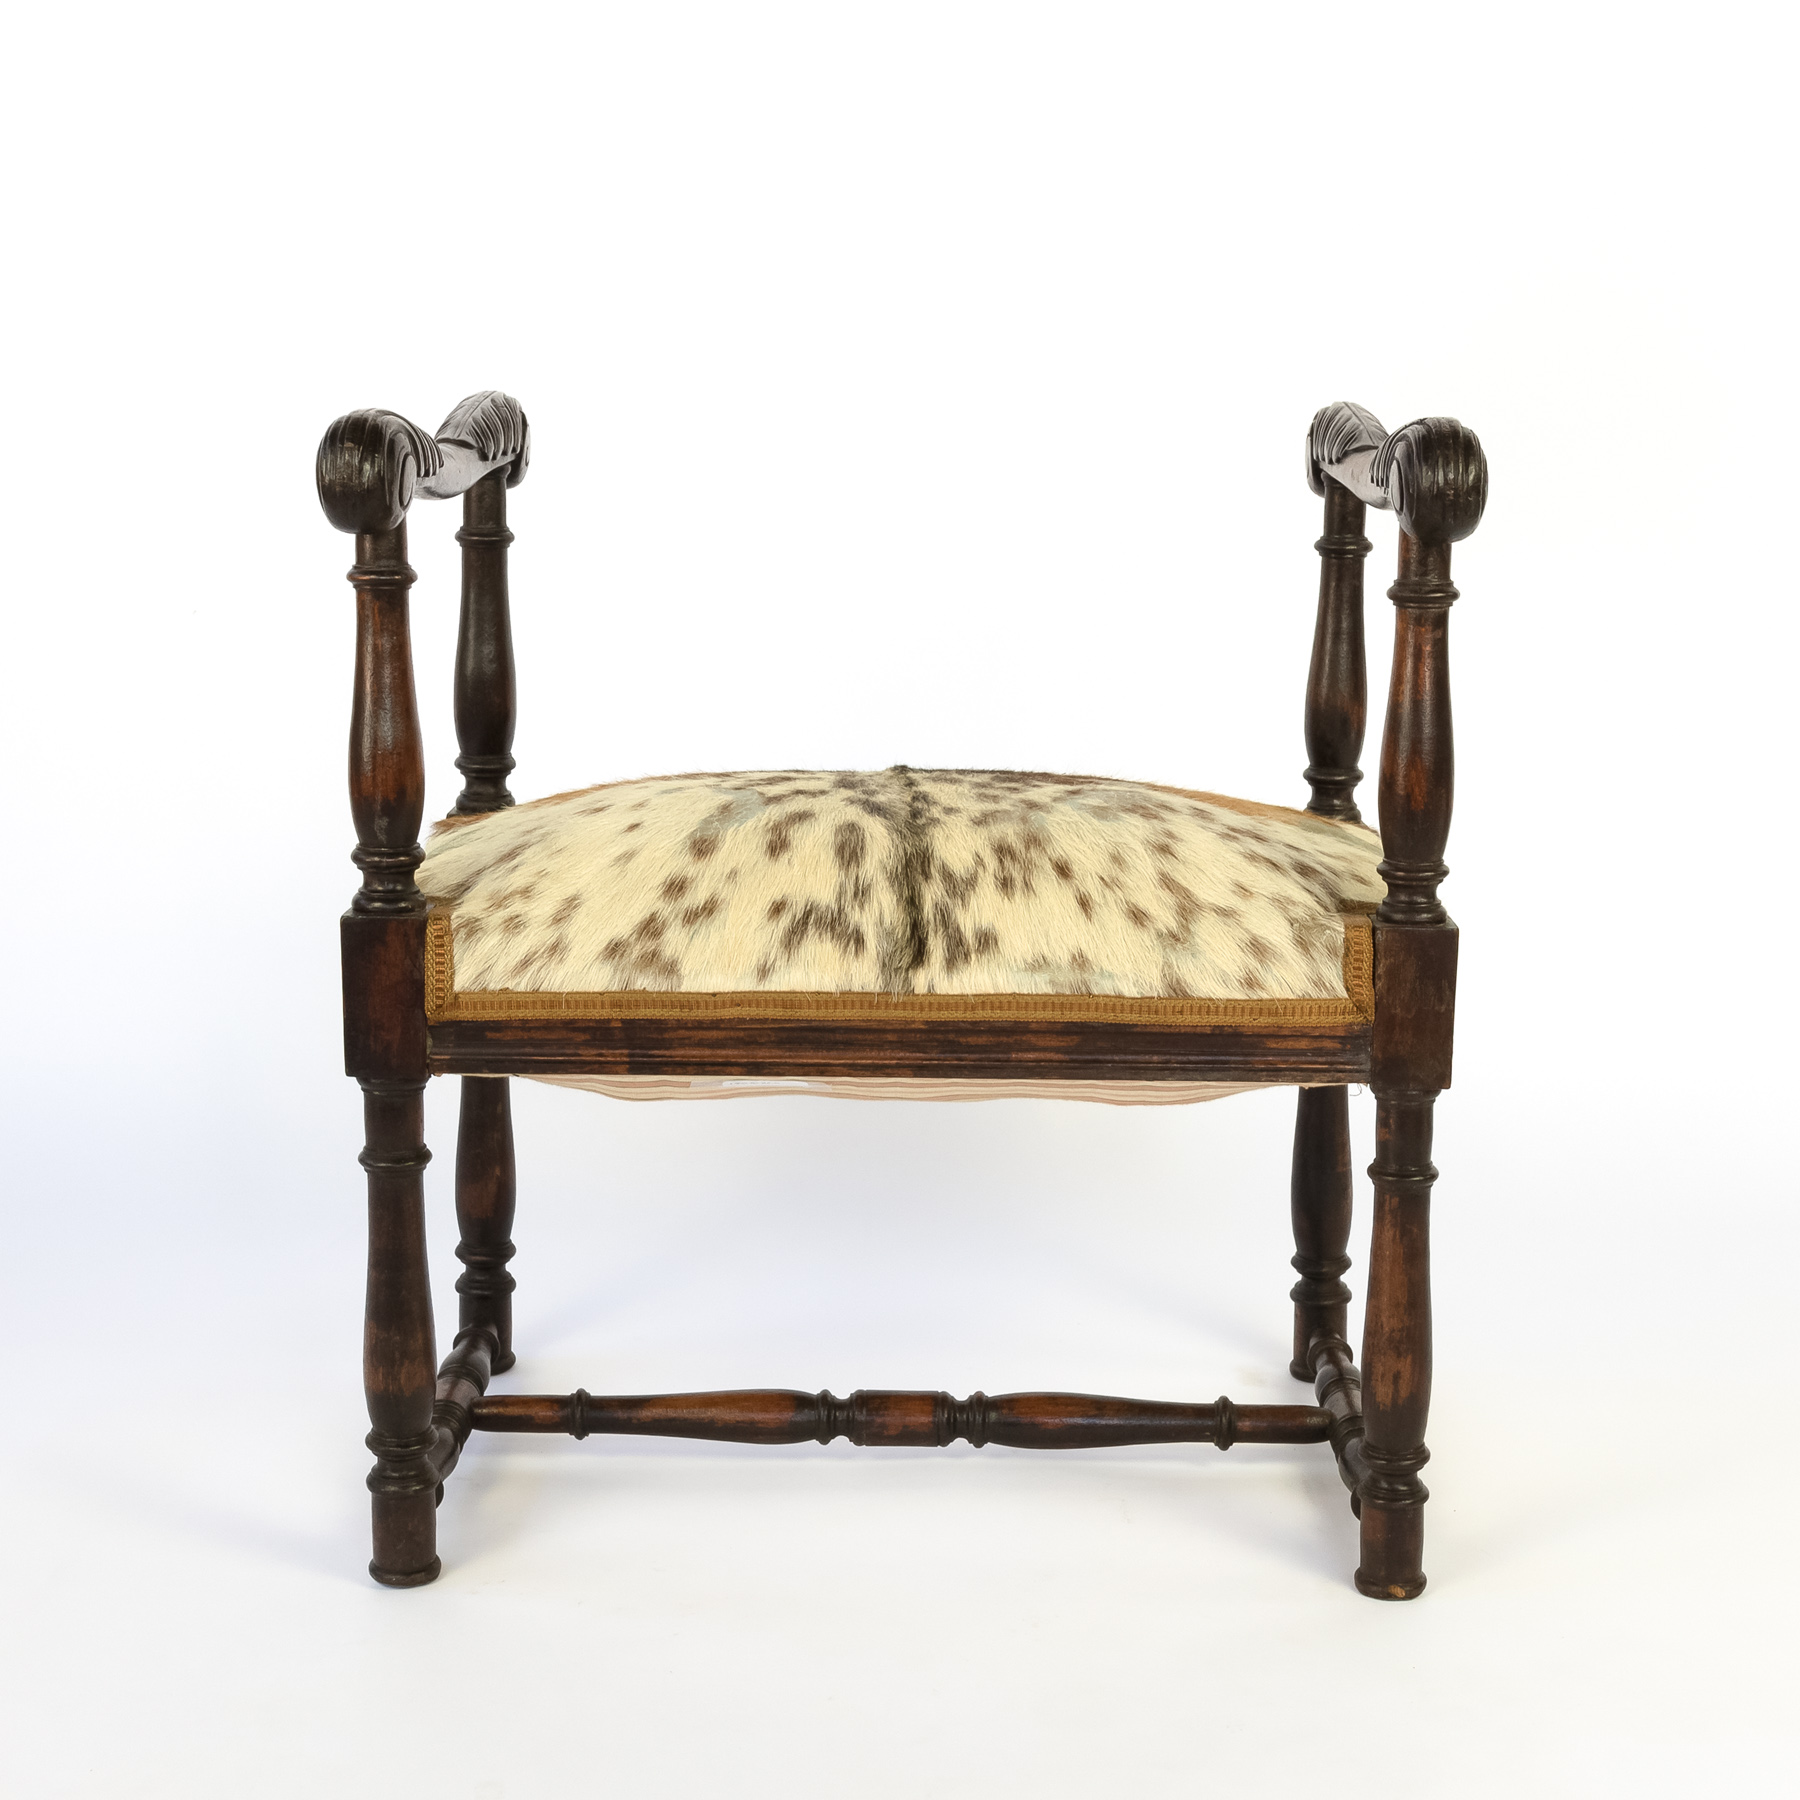 Tremendous Unusual French 19Th Century Carved Oak Upholstered Stool With Elaborately Carved Arms Creativecarmelina Interior Chair Design Creativecarmelinacom